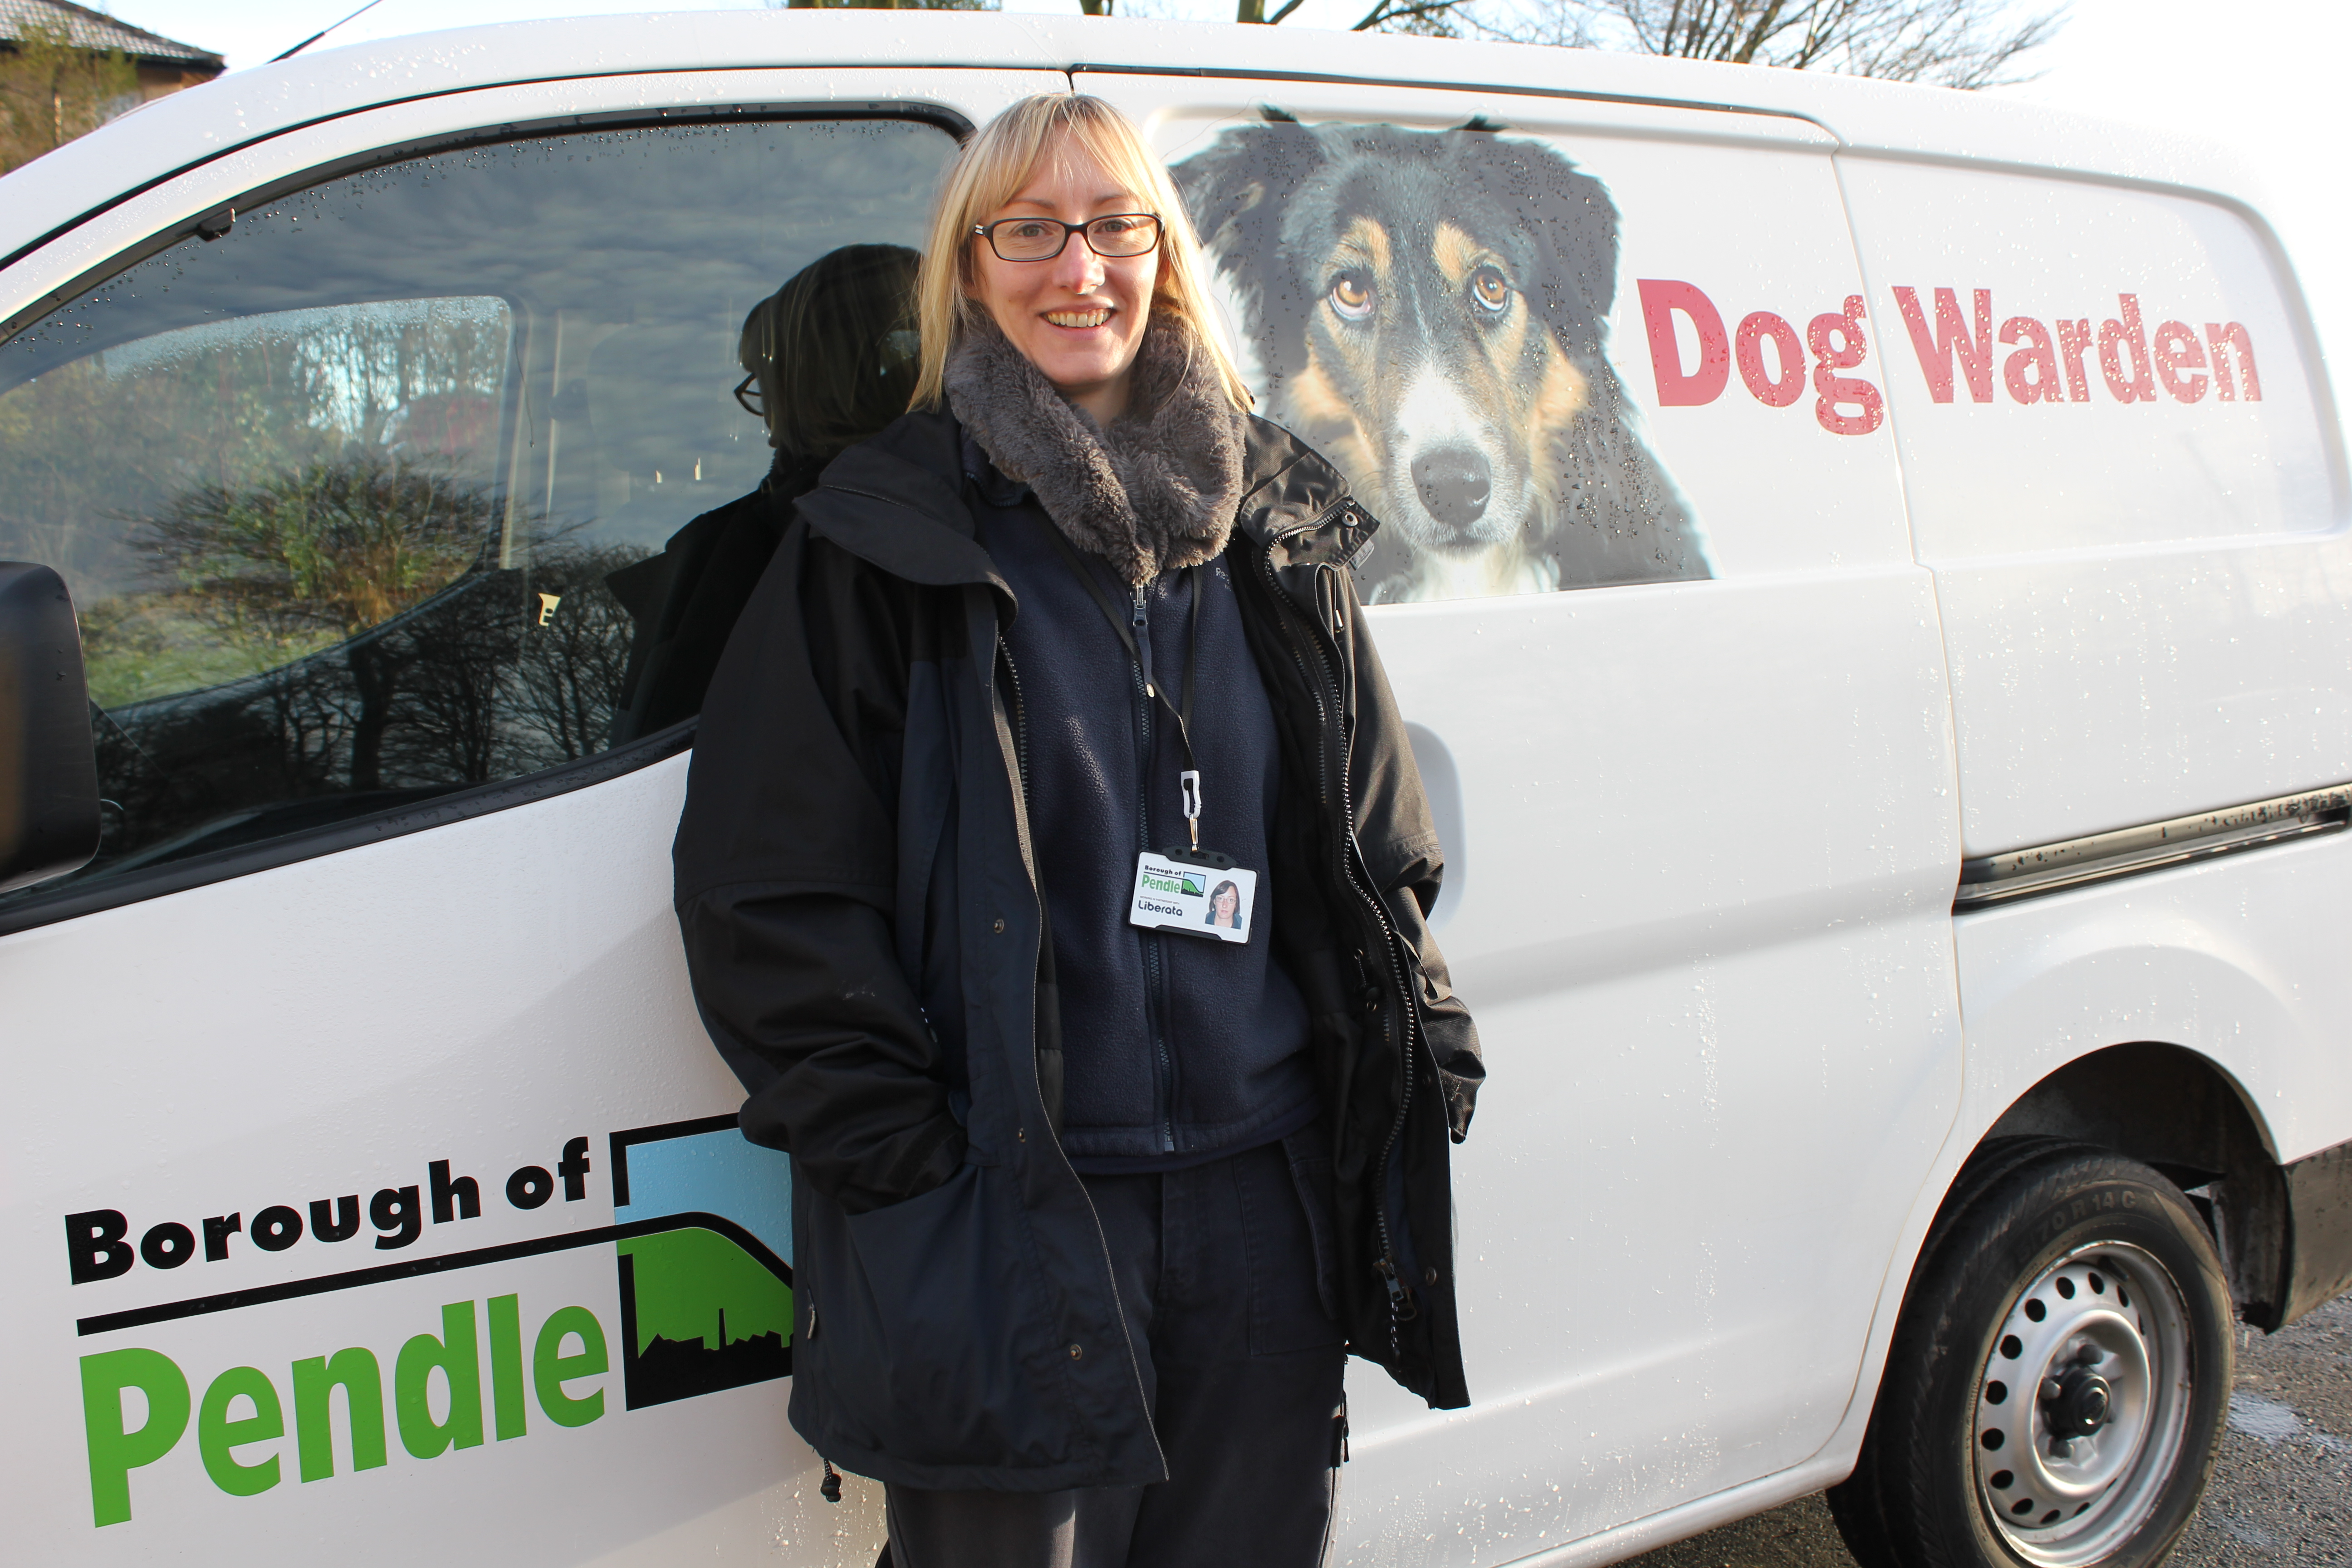 Free event to keep Pendle dog owners within the law